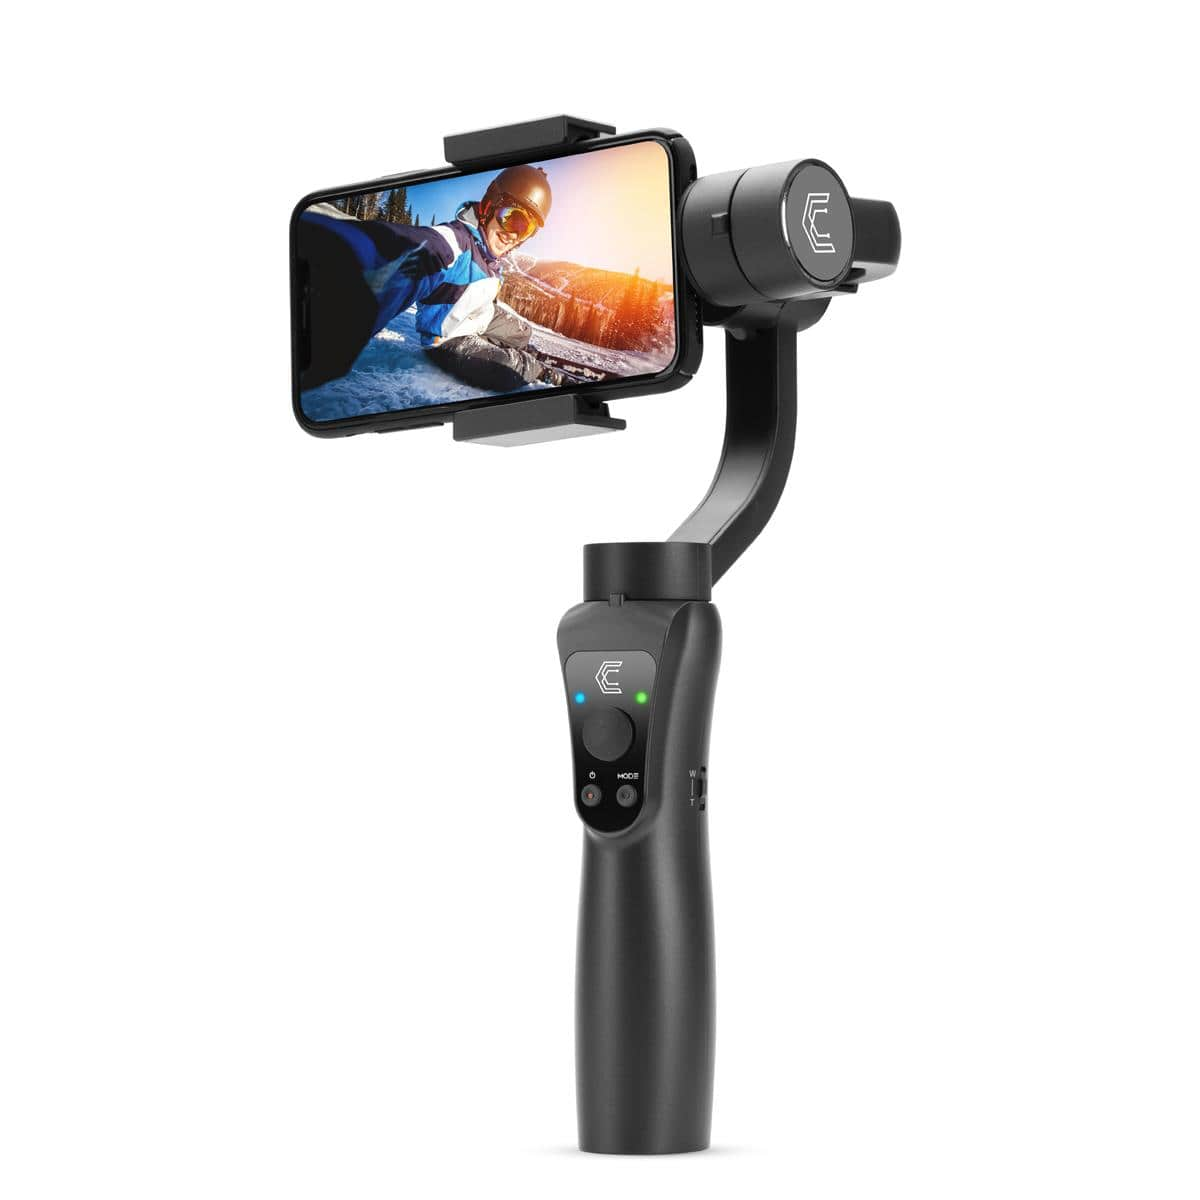 Clar 3-Axis Handheld Cell Phone Gimbal $50 + free s/h